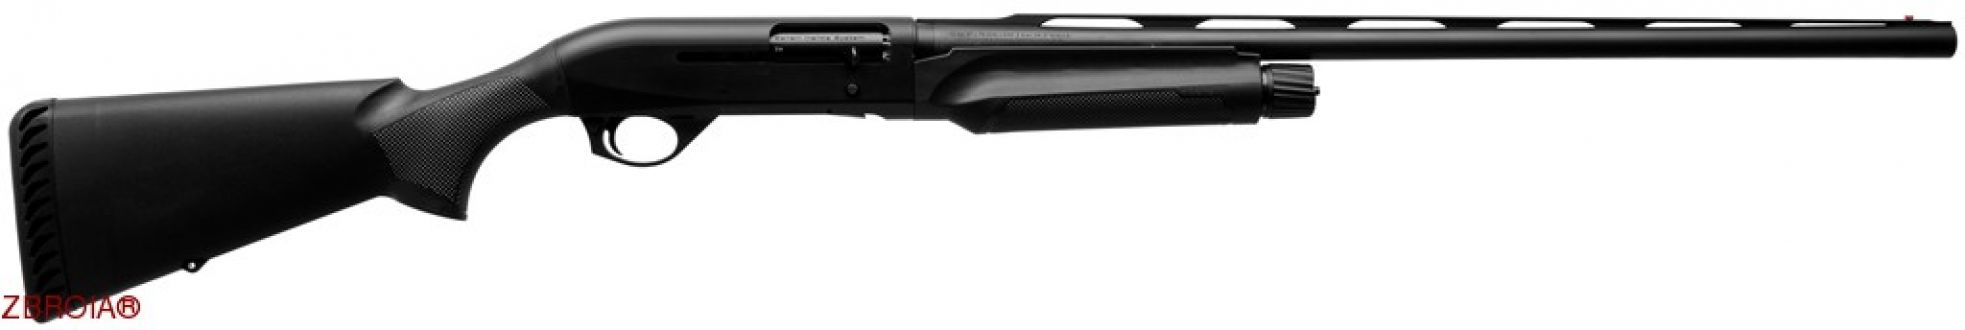 Ружье Benelli M2 ES Synthetic кал. 12/76